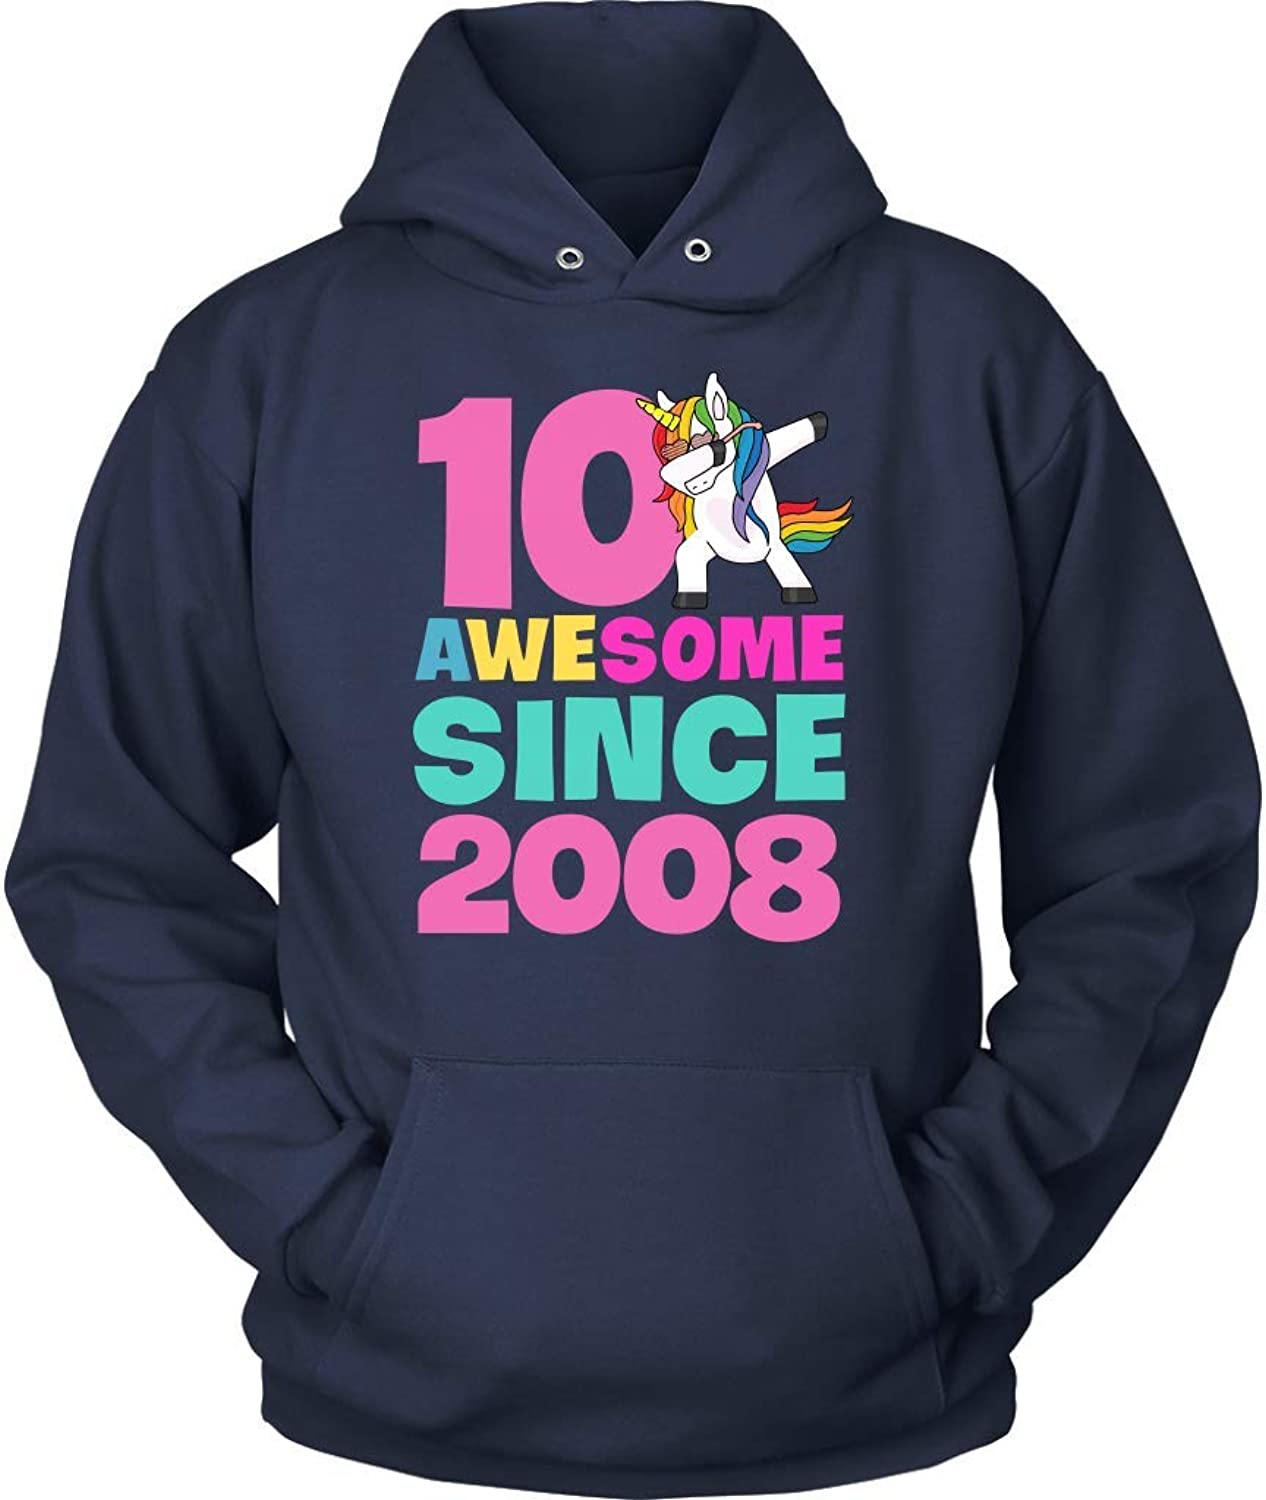 eb2a6fffe14 Awesome Awesome Awesome Since 2008 Shirt - Funny 10th Birthday Party  T-Shirt Youth Hoodie 74f966